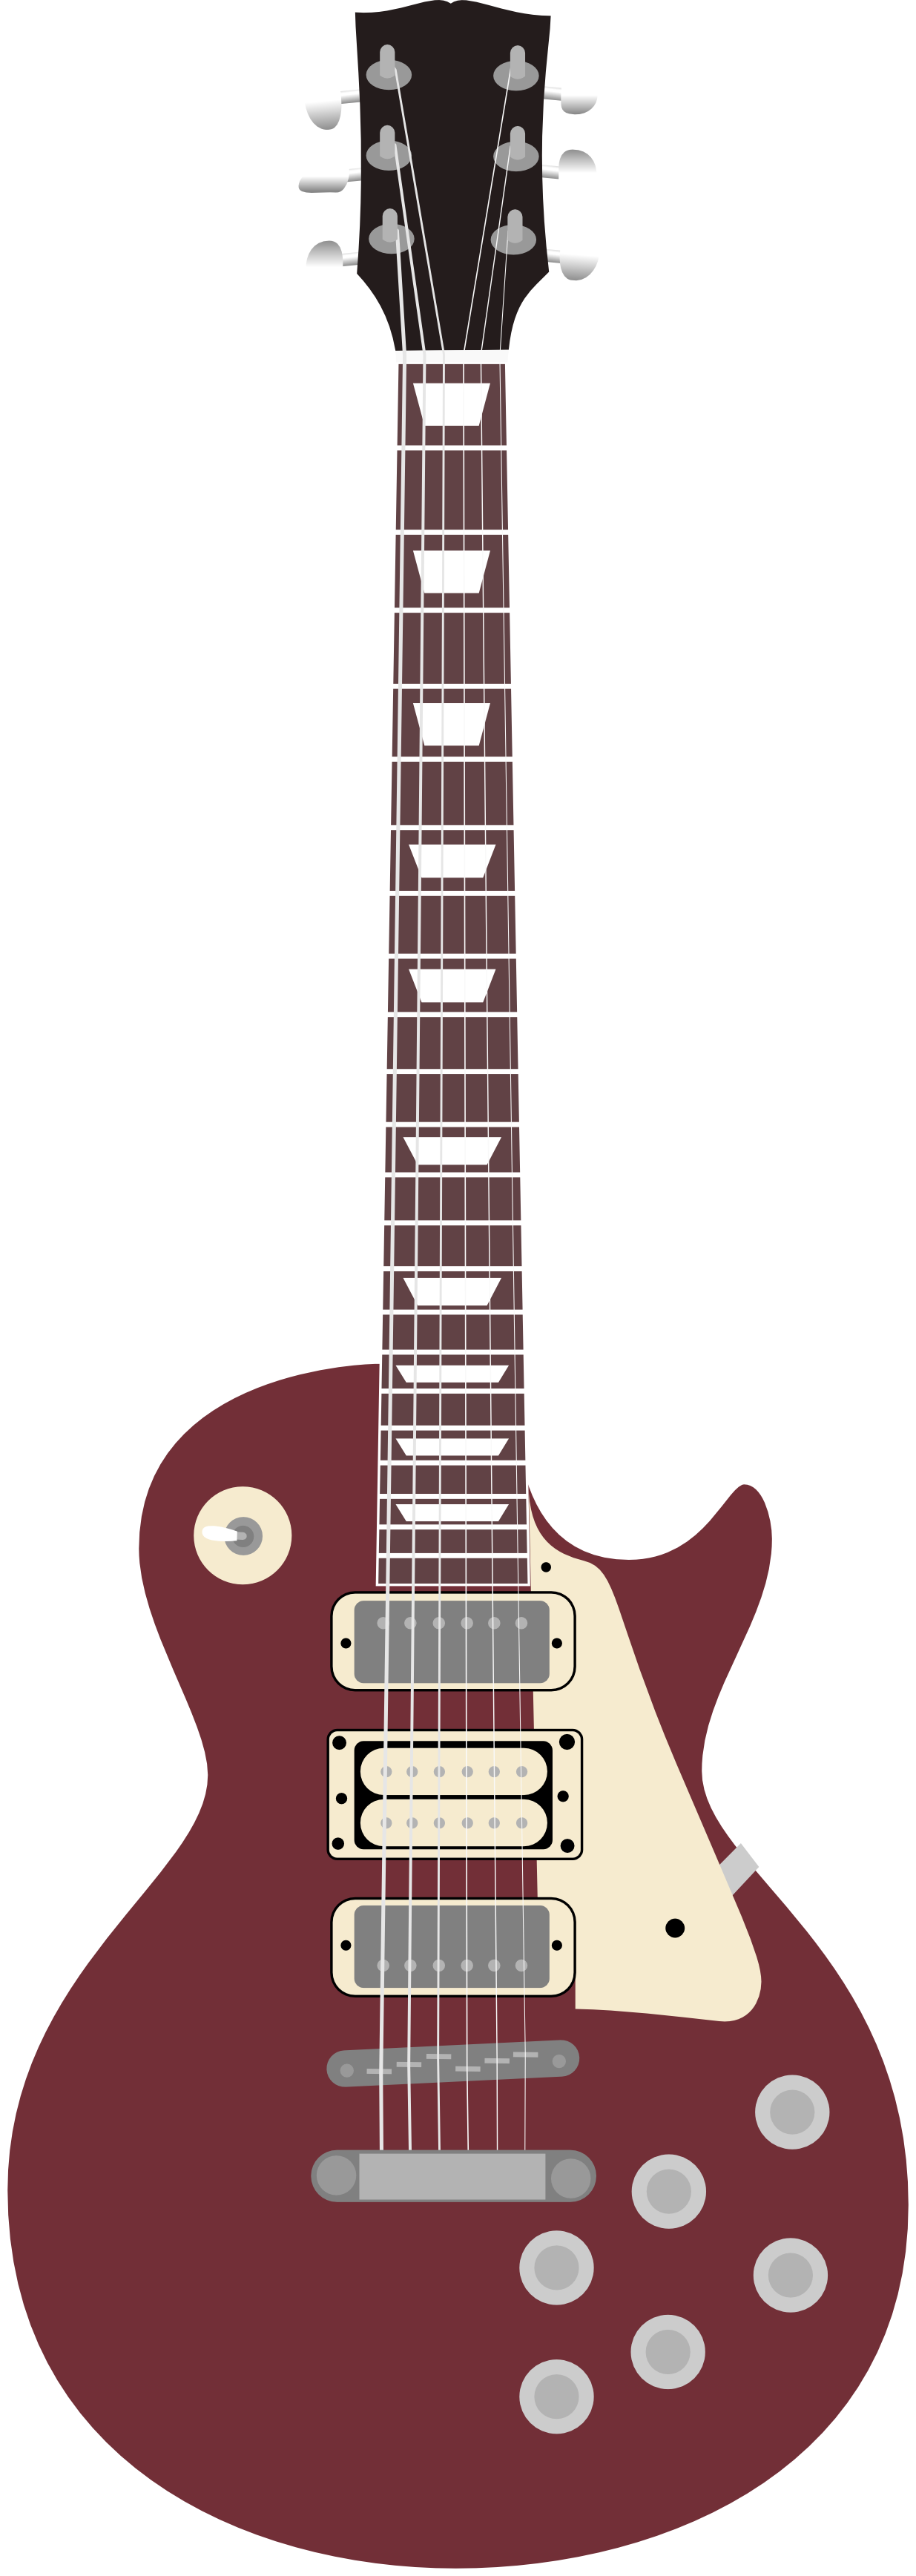 gibson les paul pete townshend signature edition by shimmerscroll on deviantart. Black Bedroom Furniture Sets. Home Design Ideas